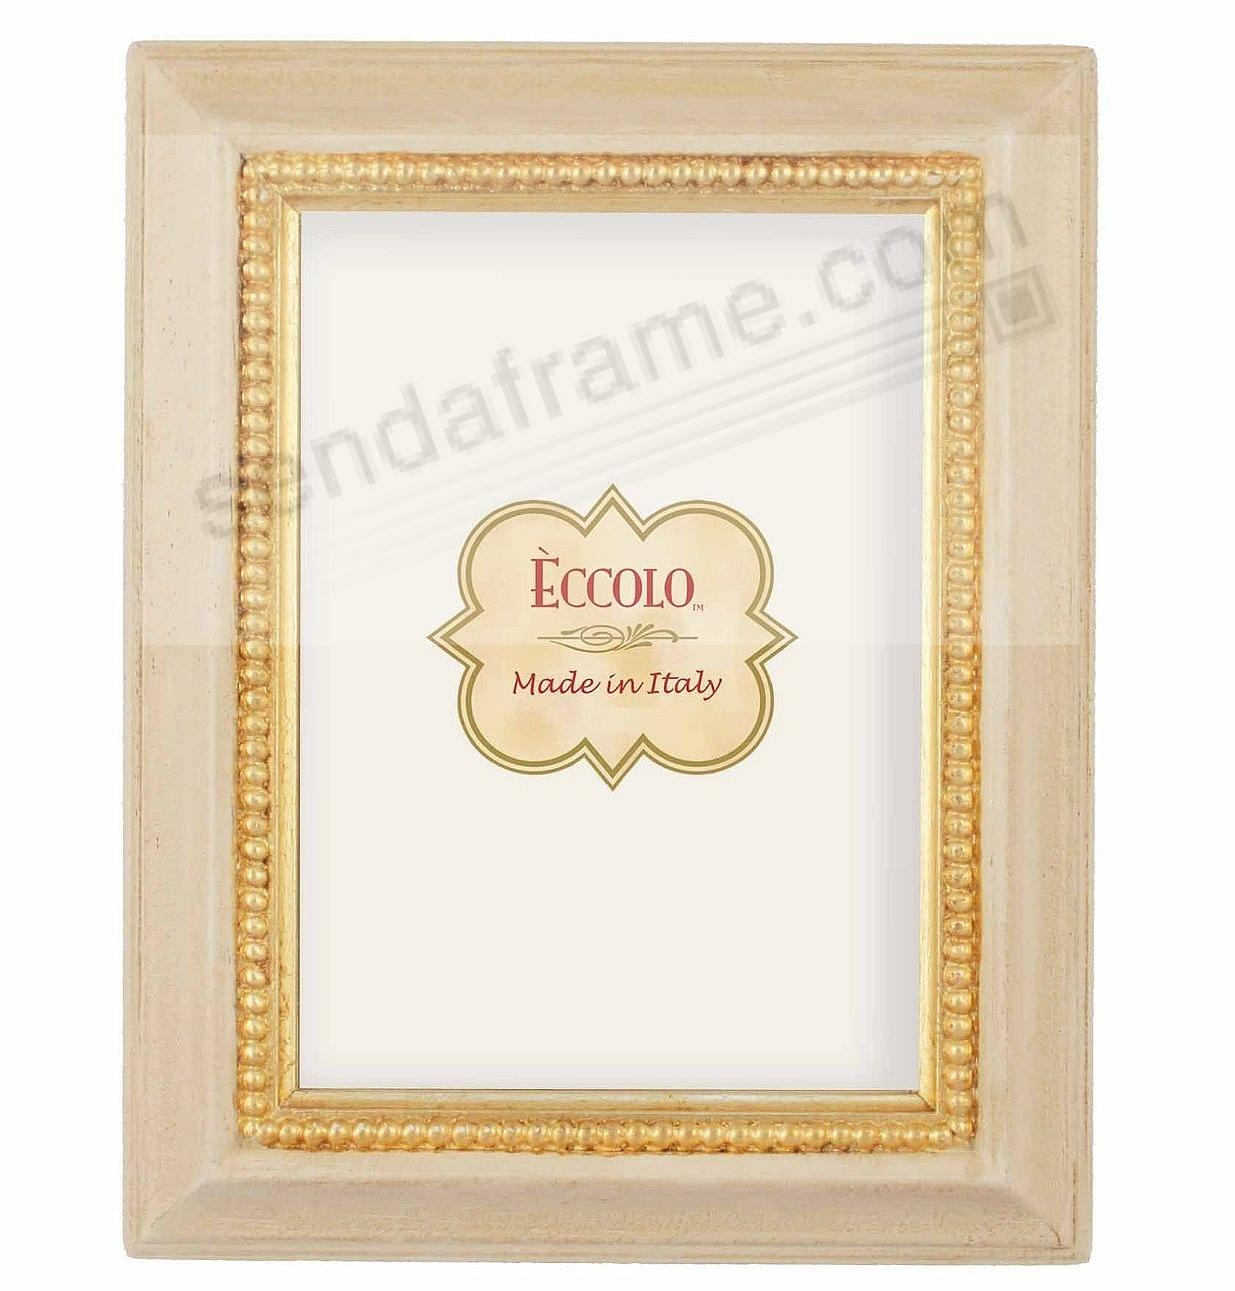 Antique ivory and gold bead carved wood 5x7 frame by eccolo antique ivory and gold bead carved wood 5x7 frame by eccolo jeuxipadfo Image collections